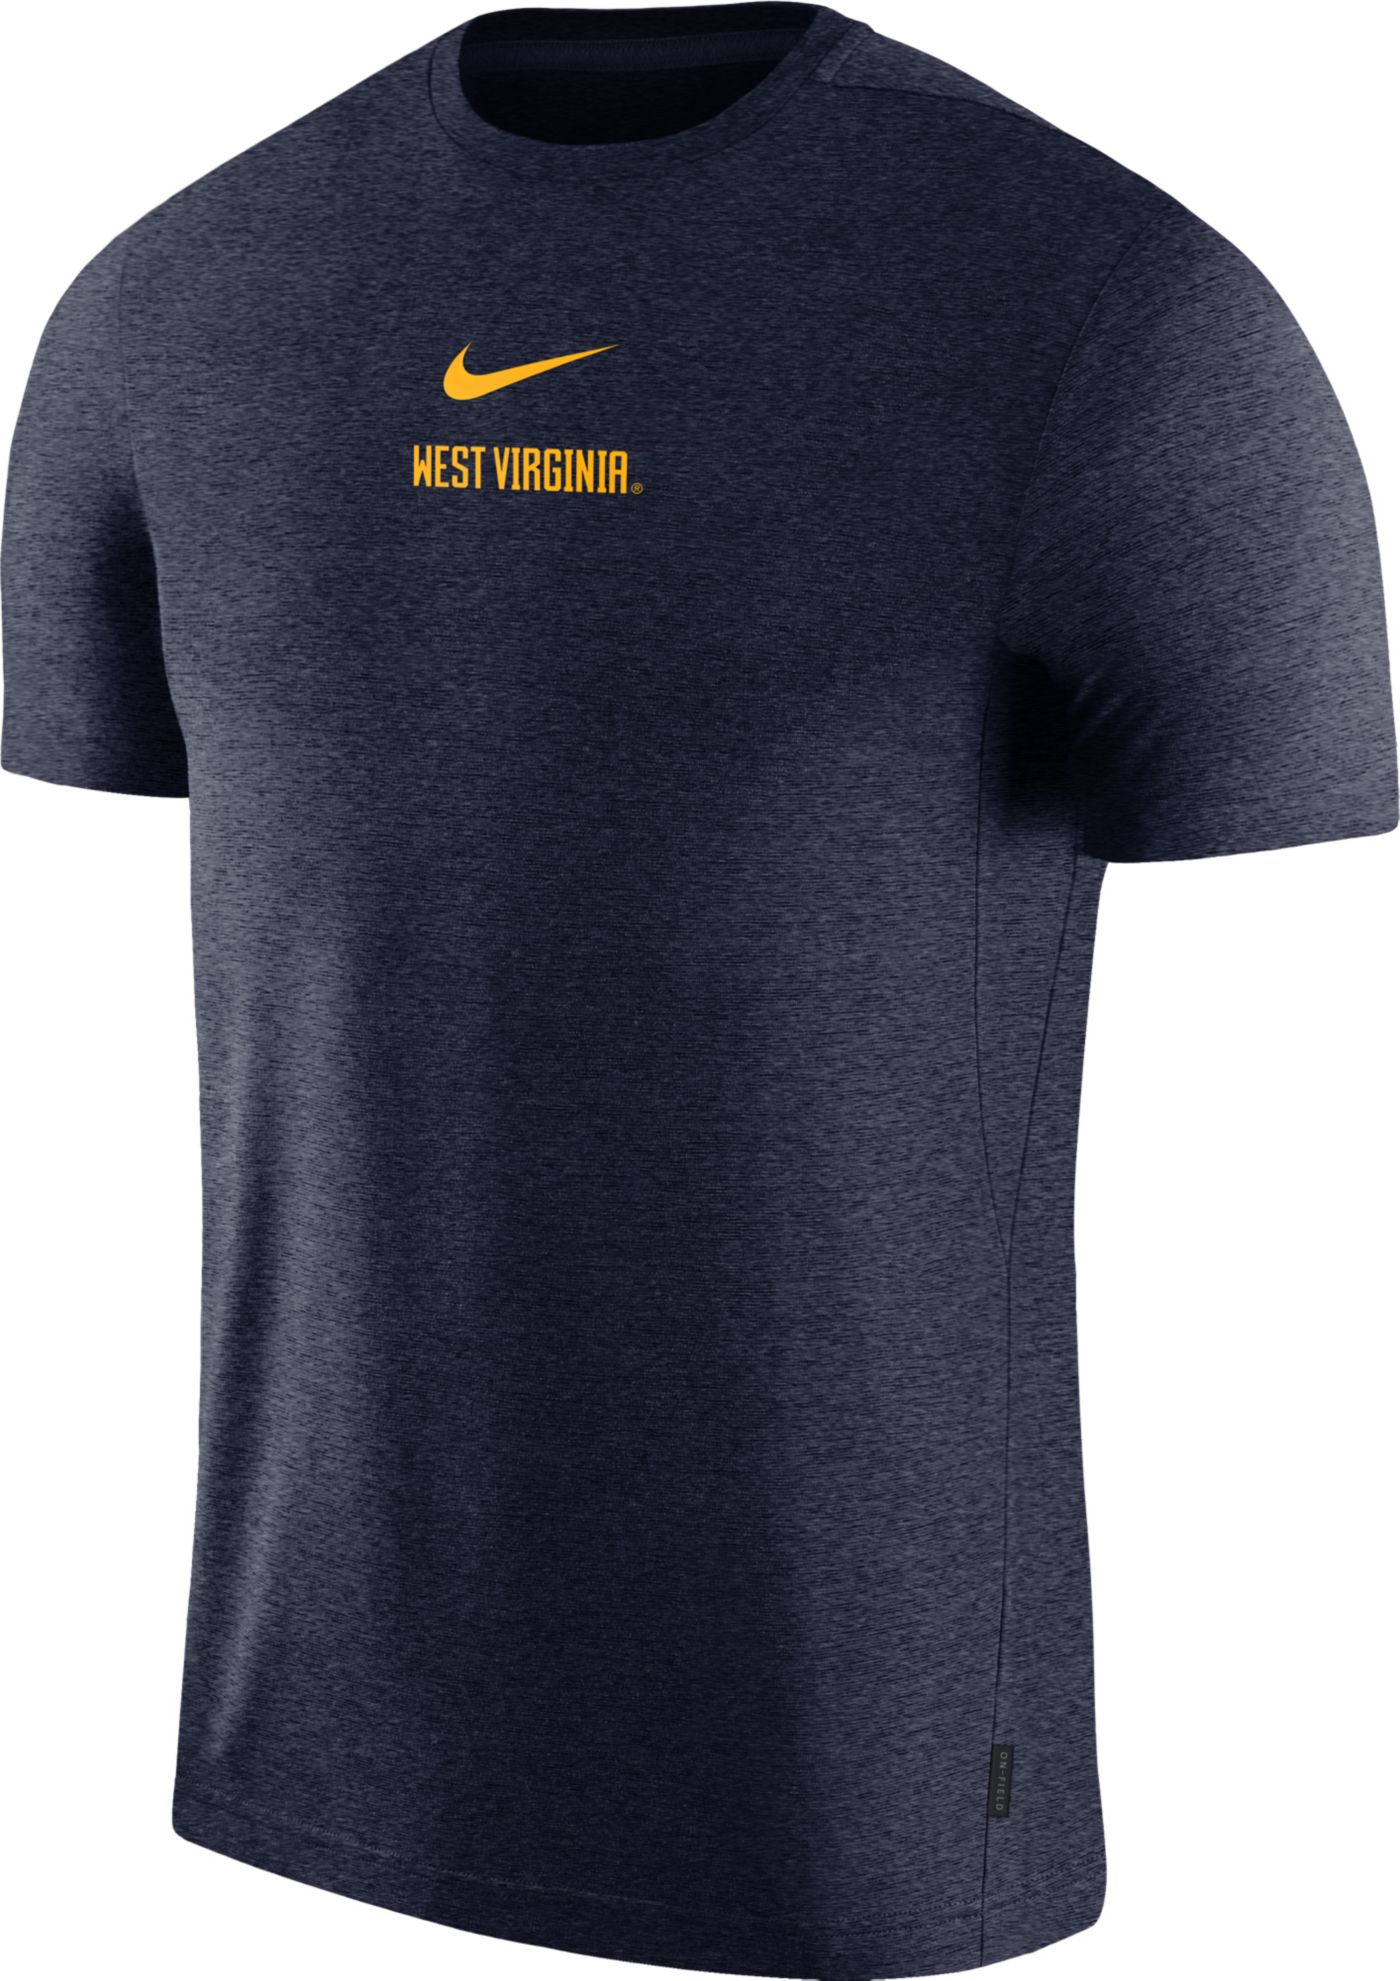 Nike Men's West Virginia Mountaineers Blue Dri-FIT Coach UV Football T-Shirt